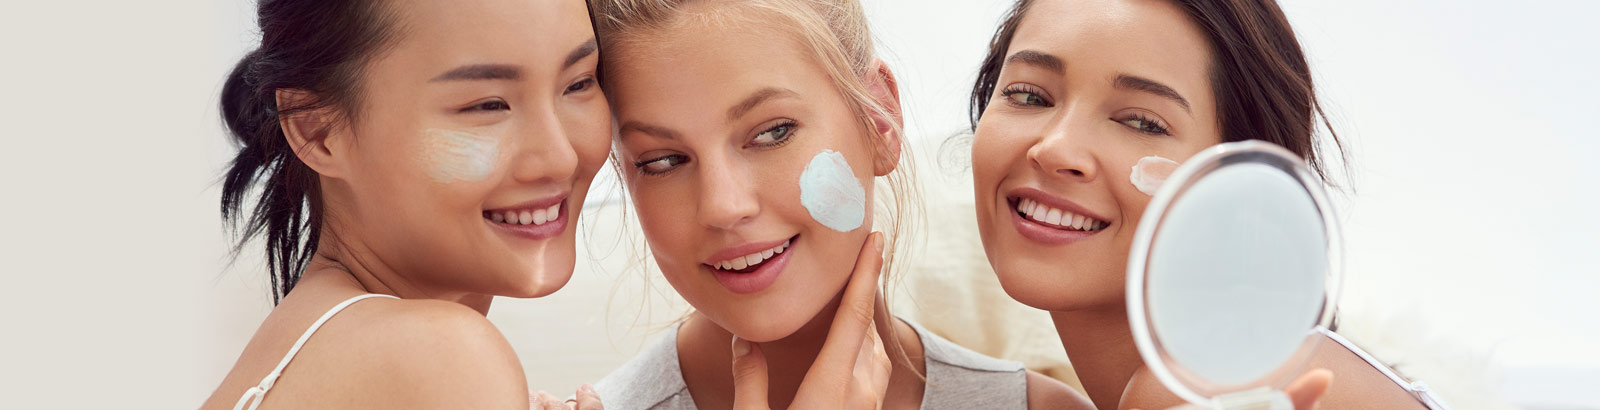 Hydration 101. Be guided to perfectly hydrated skin with beauty tips from the Clarins Experts.